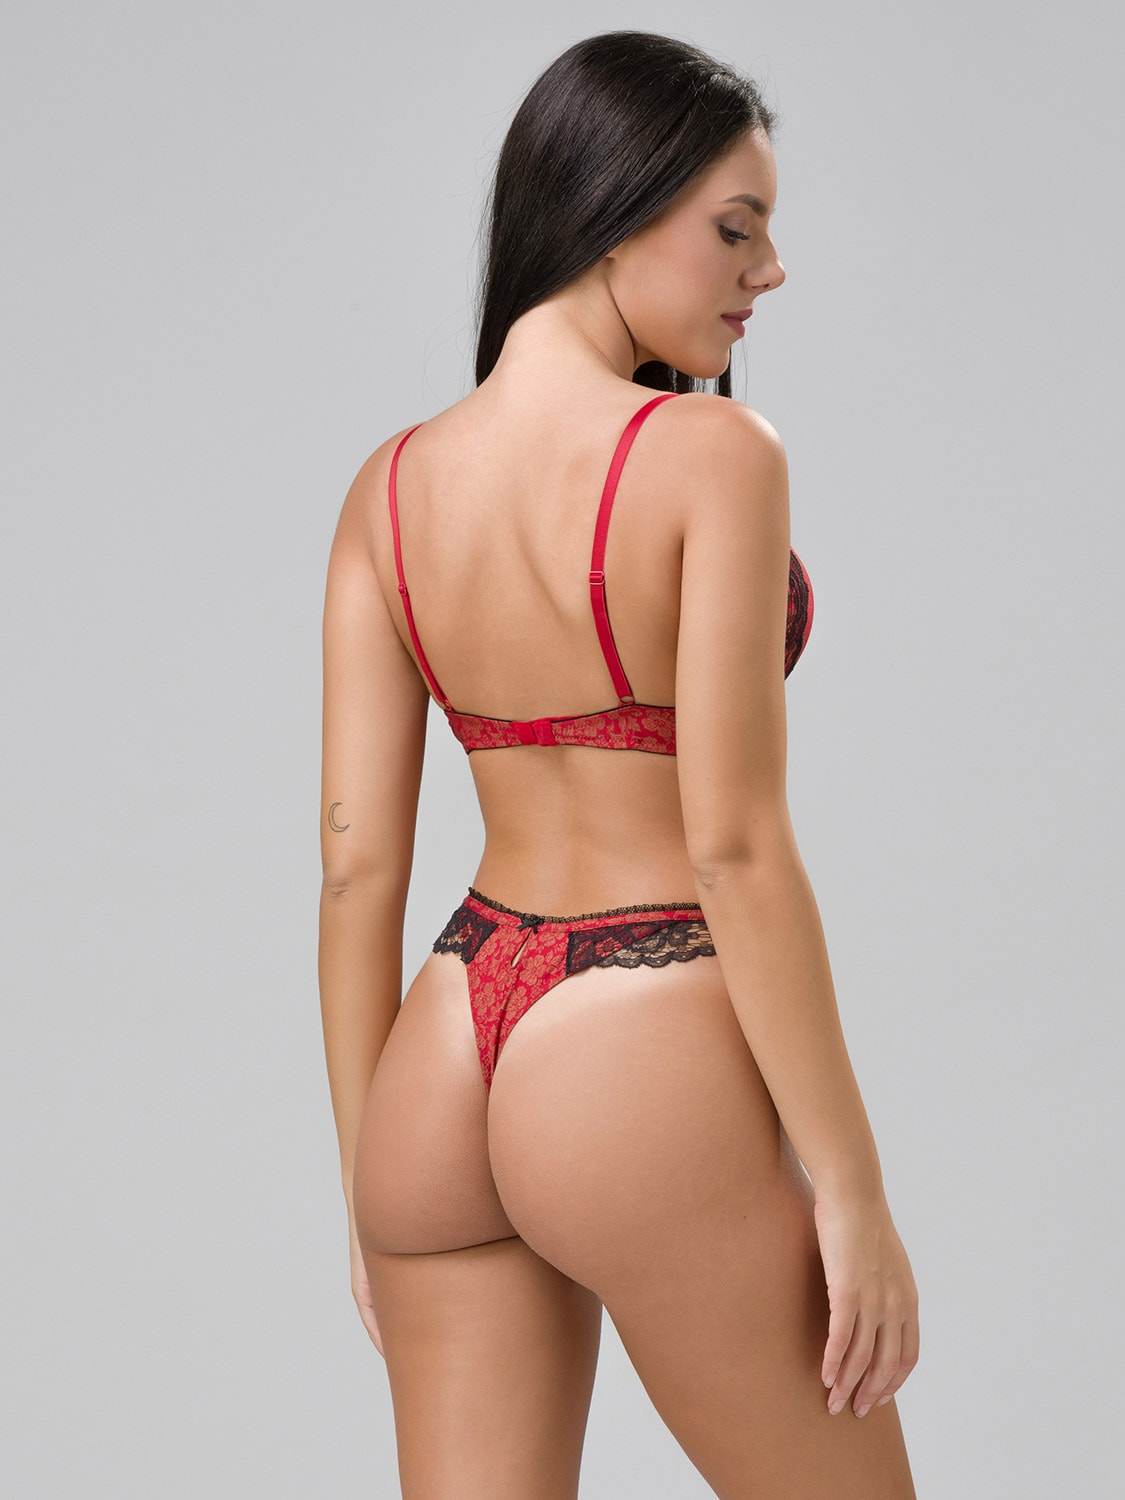 Burlesque 14102 super push-up & 24100 string red back